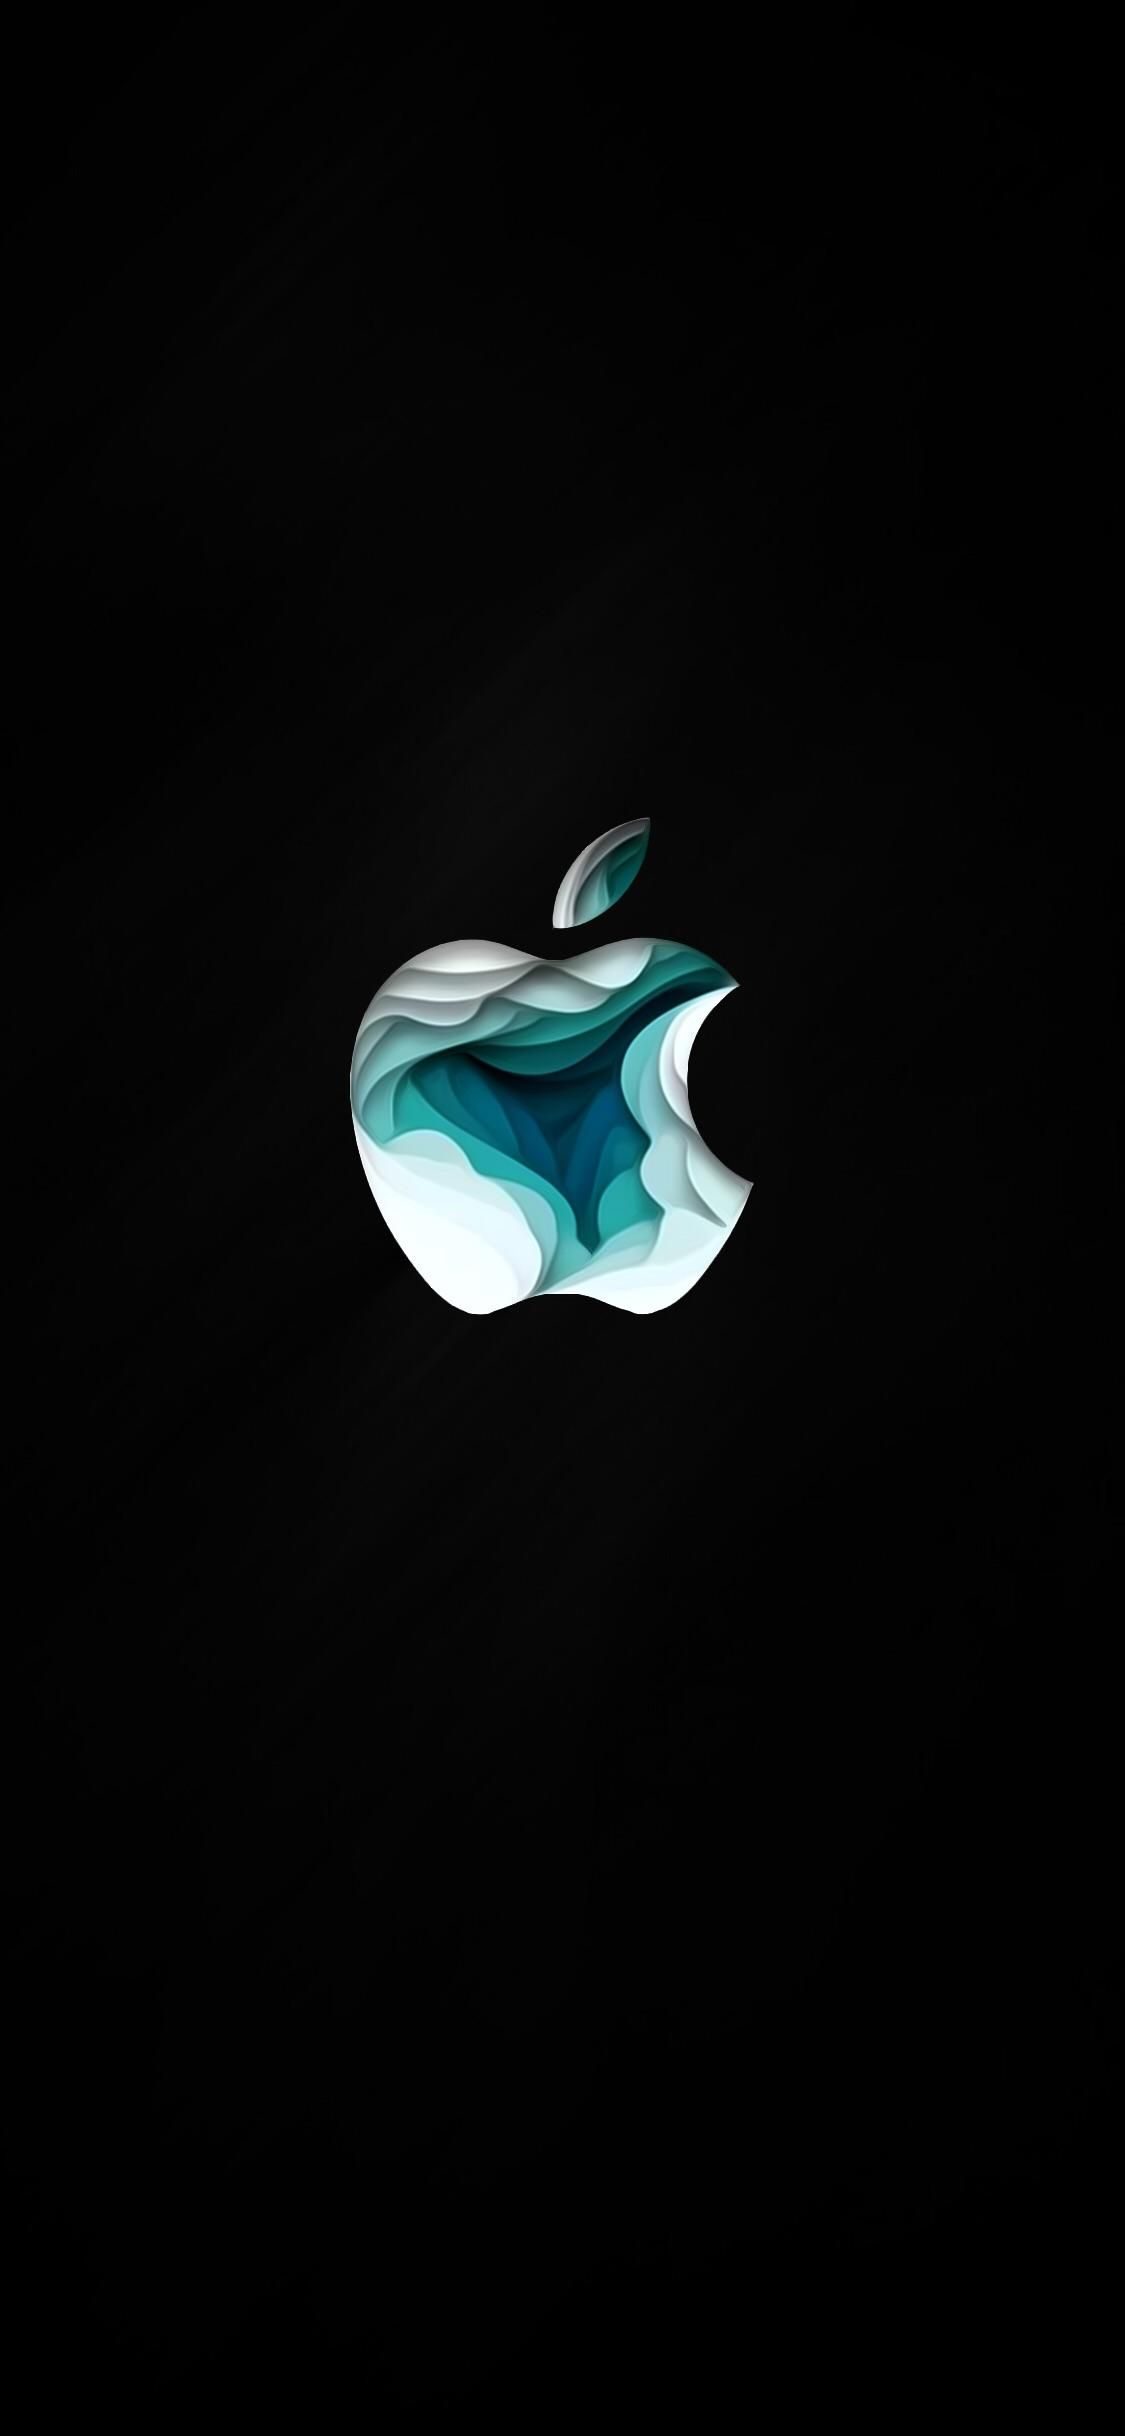 Apple Special Event Logo True Black Apple Logo Wallpaper Iphone Apple Wallpaper Full Hd Apple Wallpaper Iphone